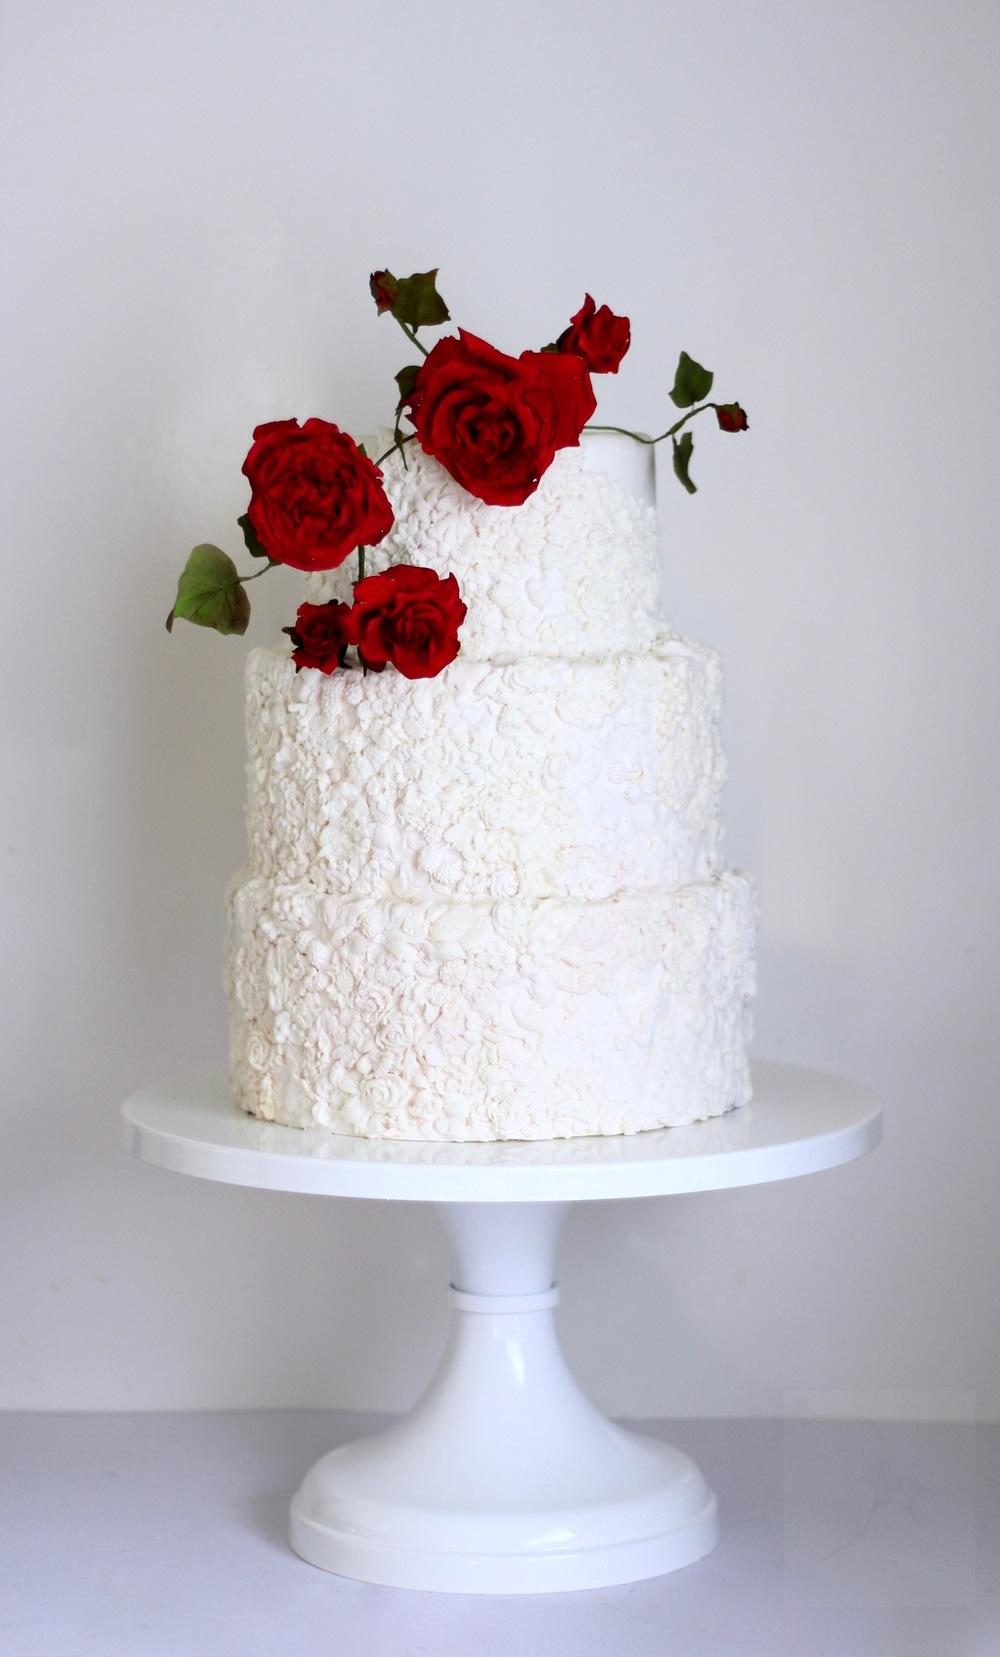 jaime gerard cake red roses and bas relief wedding cake trinidad and tobago.jpg